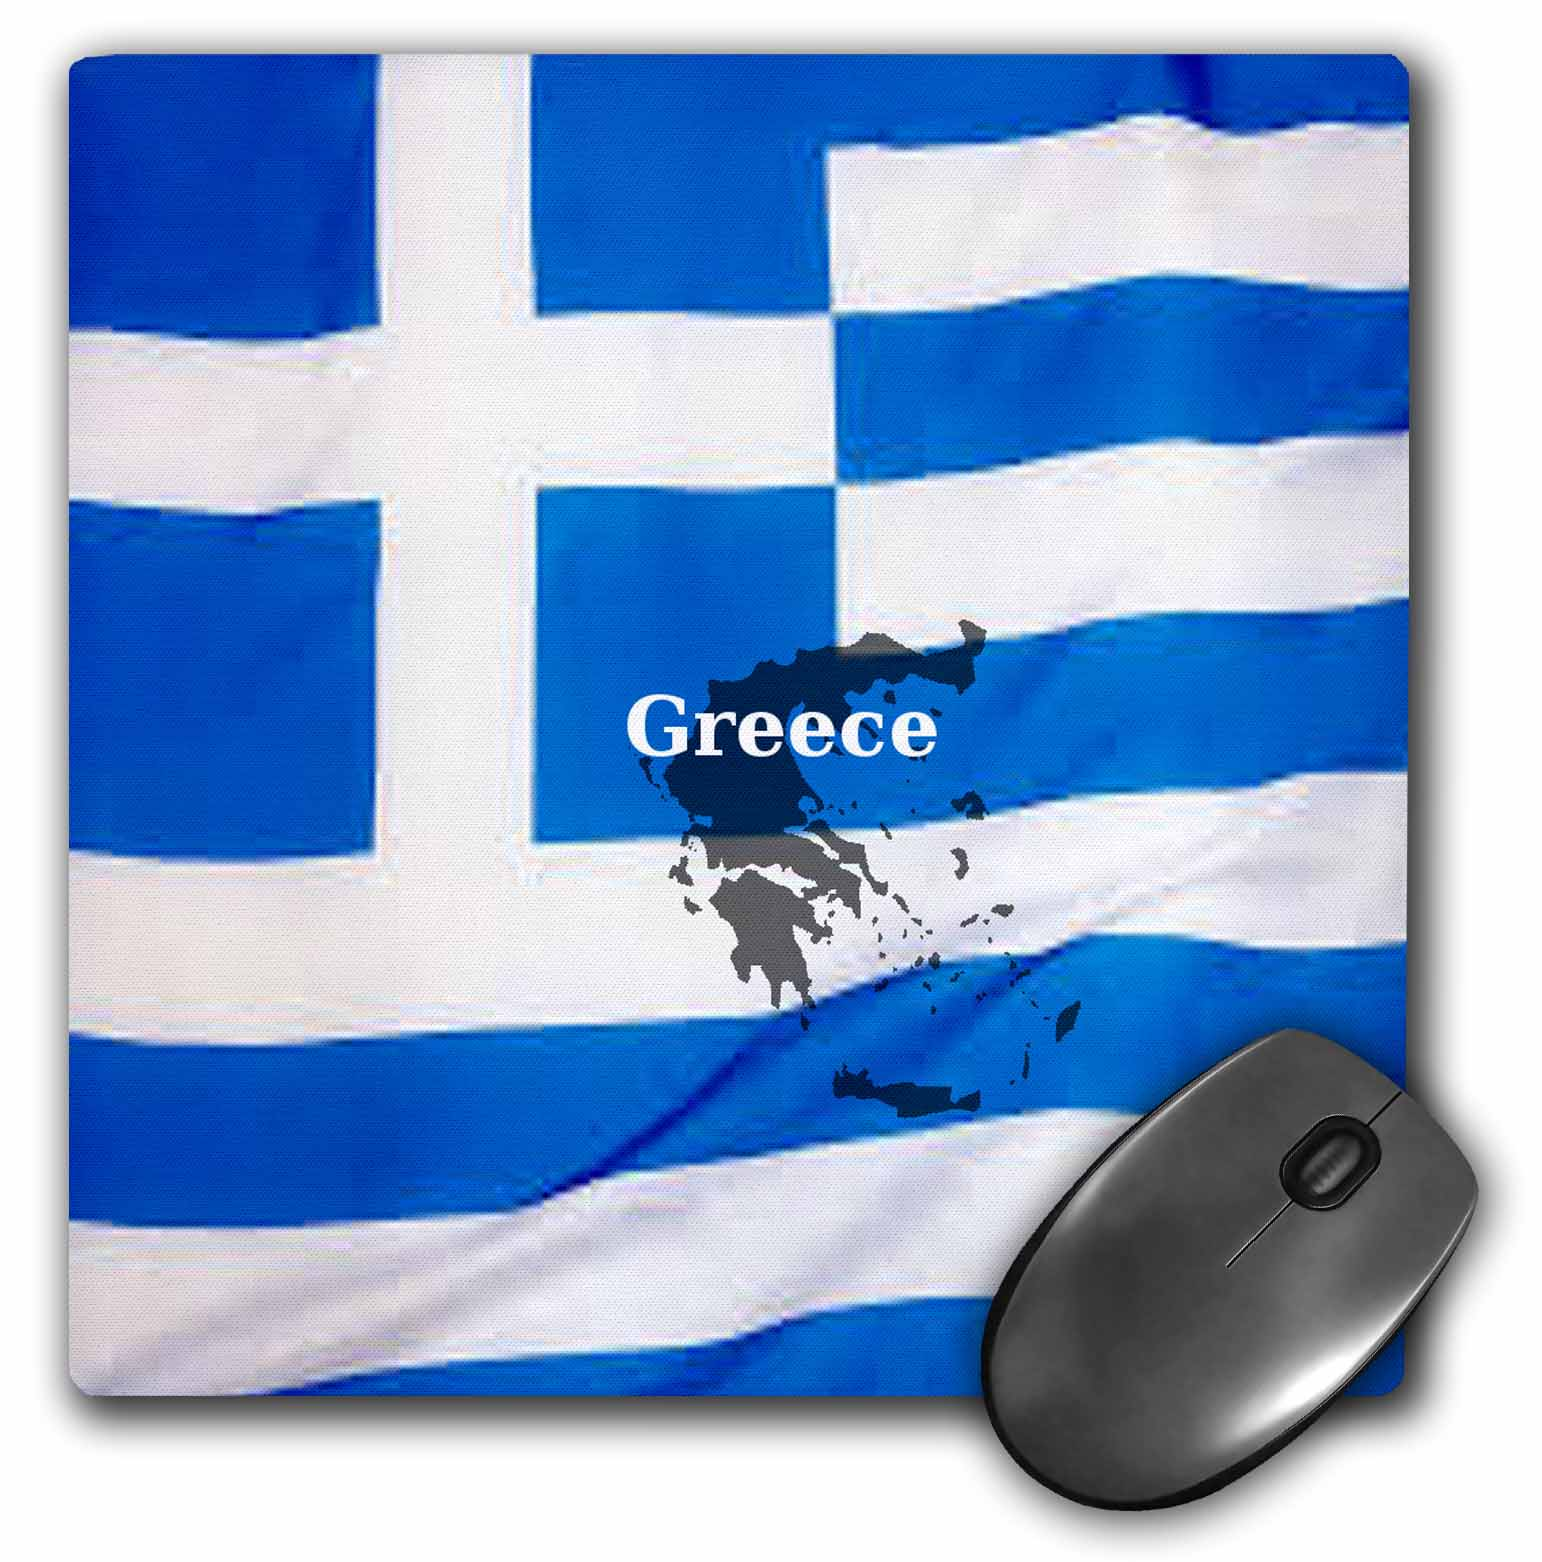 3dRose Greek Flag Design, Mouse Pad, 8 by 8 inches by 3dRose